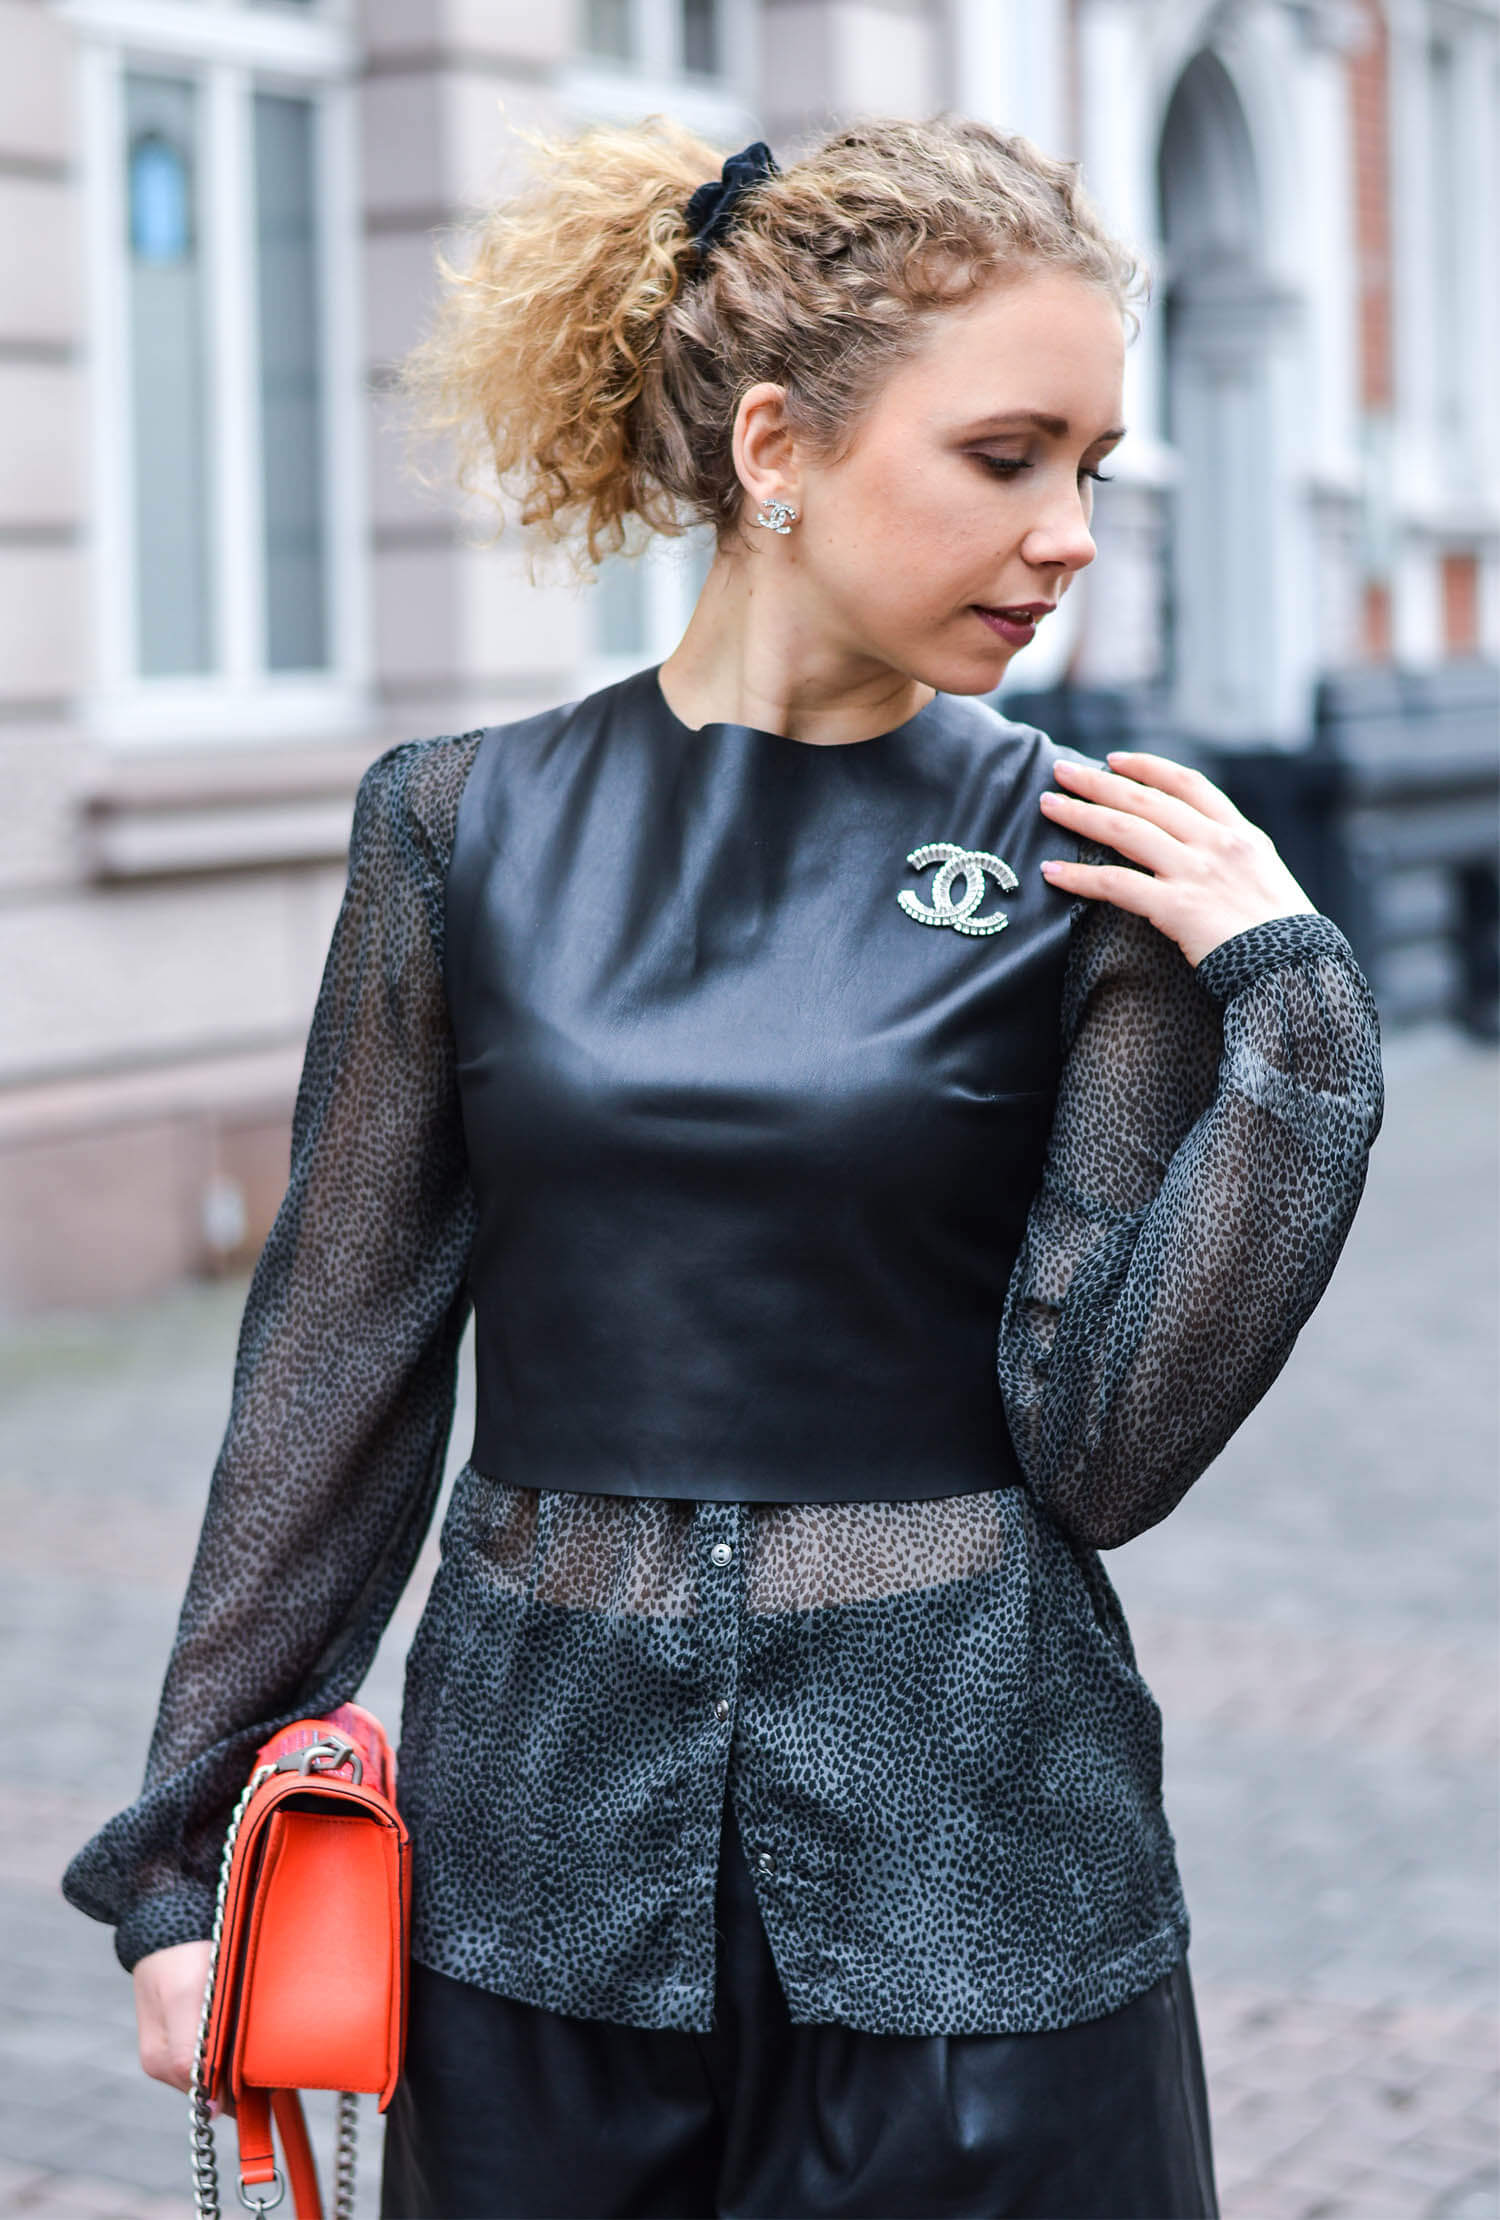 Kationette-Fashionblog-nrw-Outfit-Zara-Leather-Top-Lacing-Chanel-Accessories-streetstyle